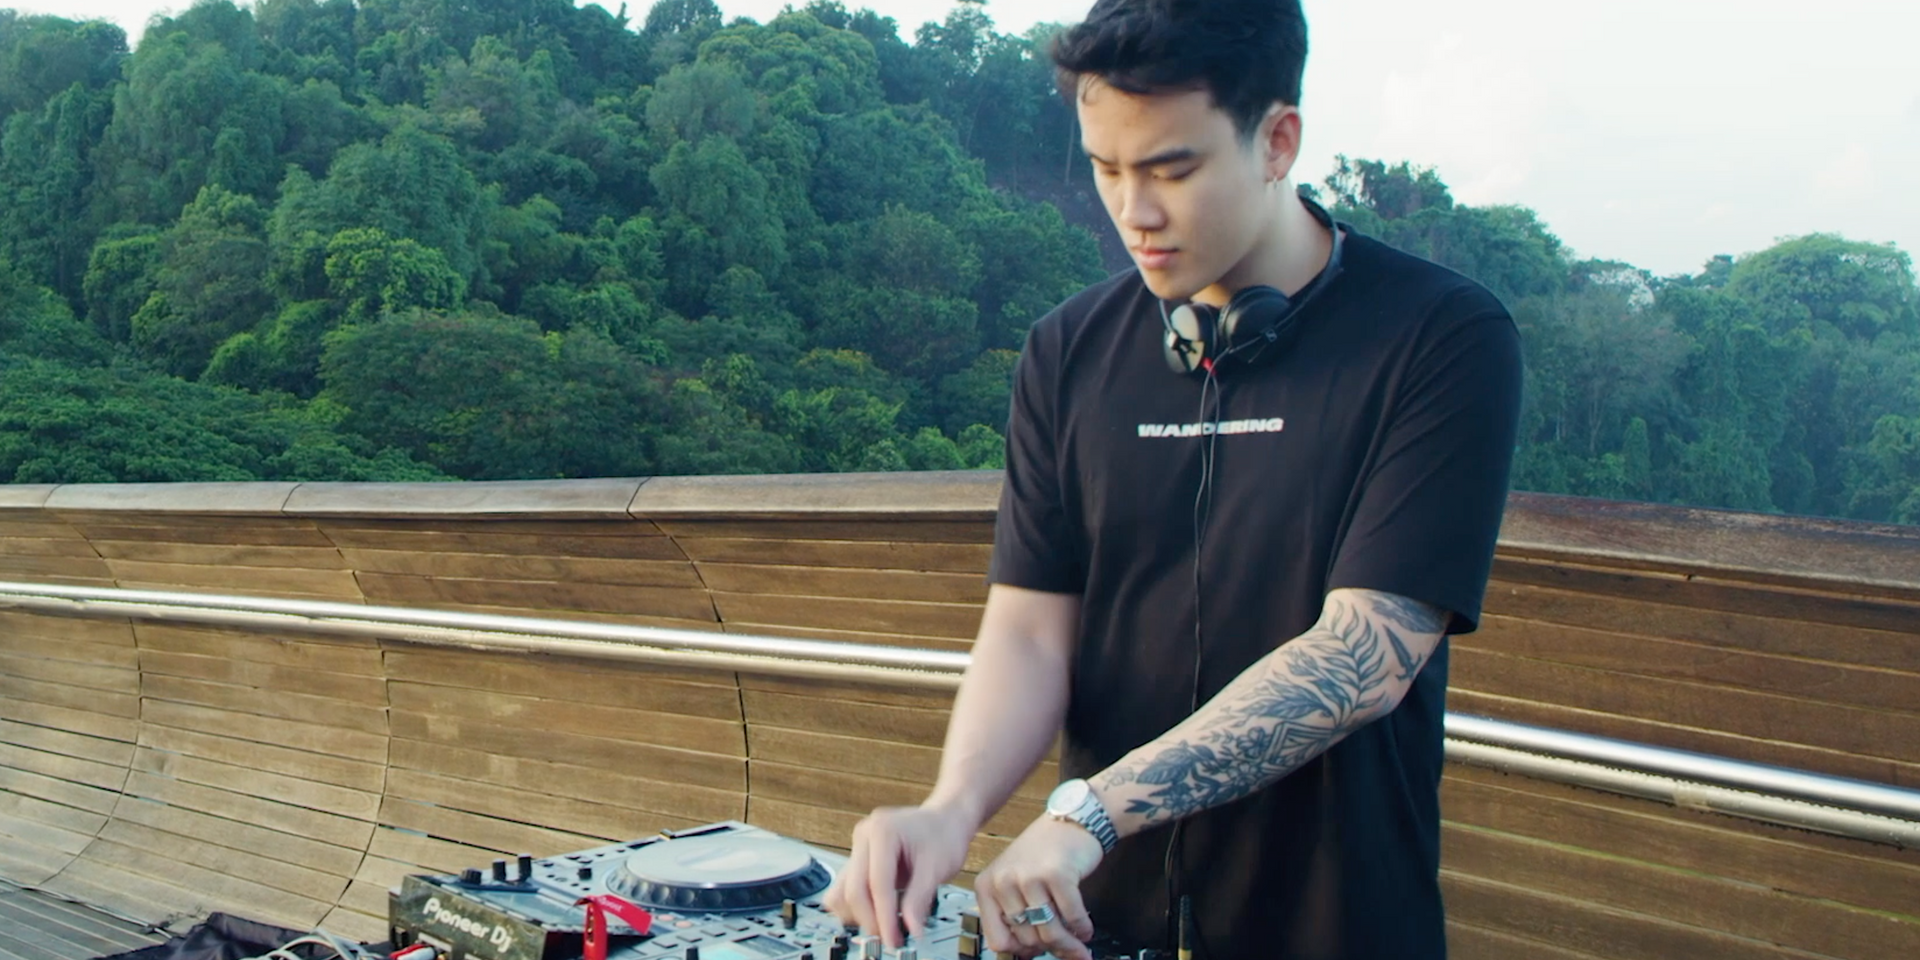 MYRNE captivates in live set at Singapore's Henderson Waves in second episode of new video series – watch